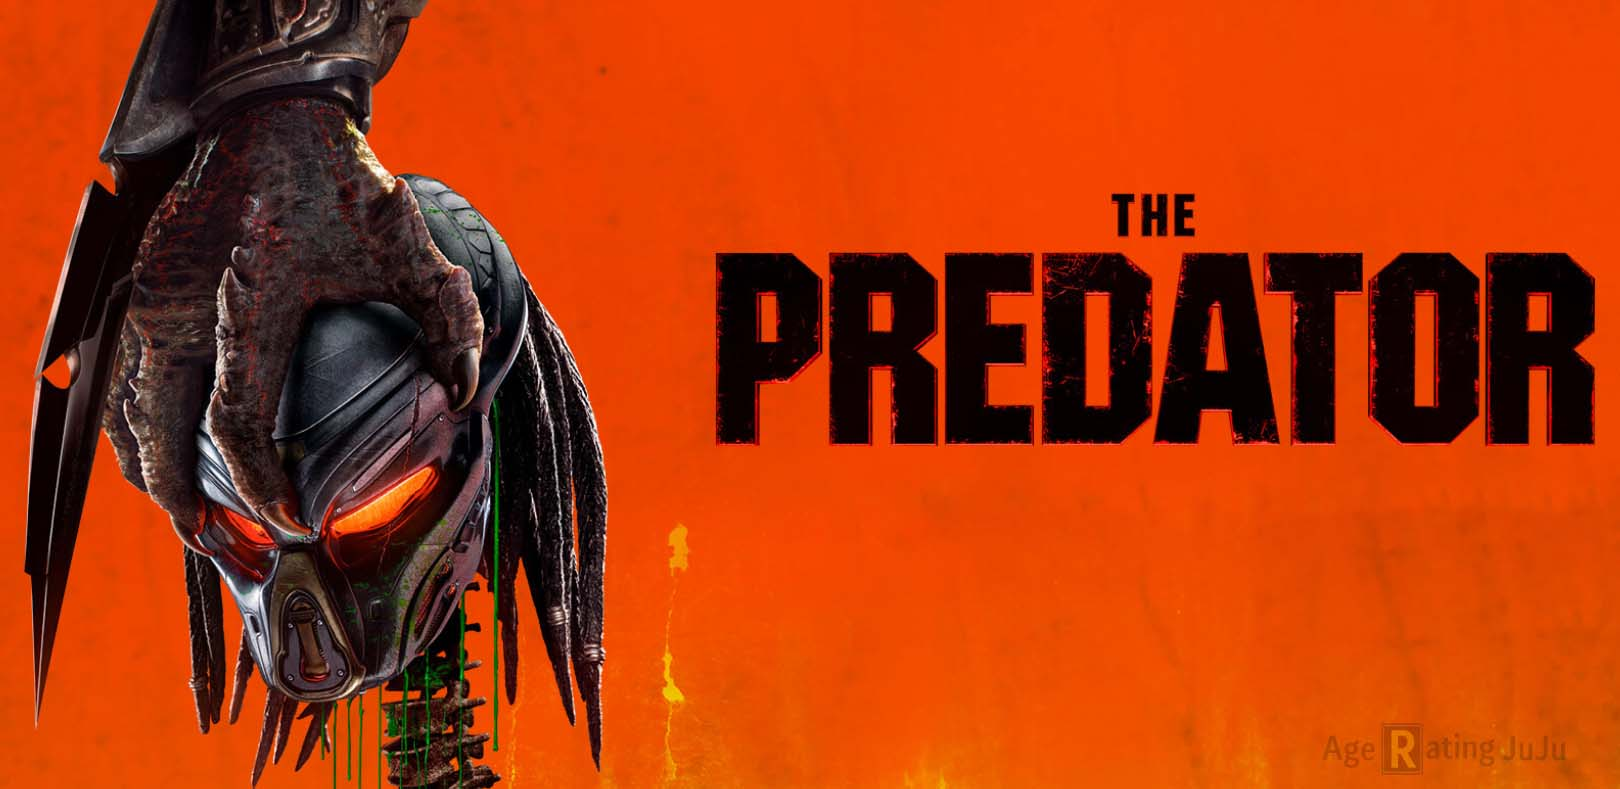 The-Predator-2018-Movie-Poster-Images-an